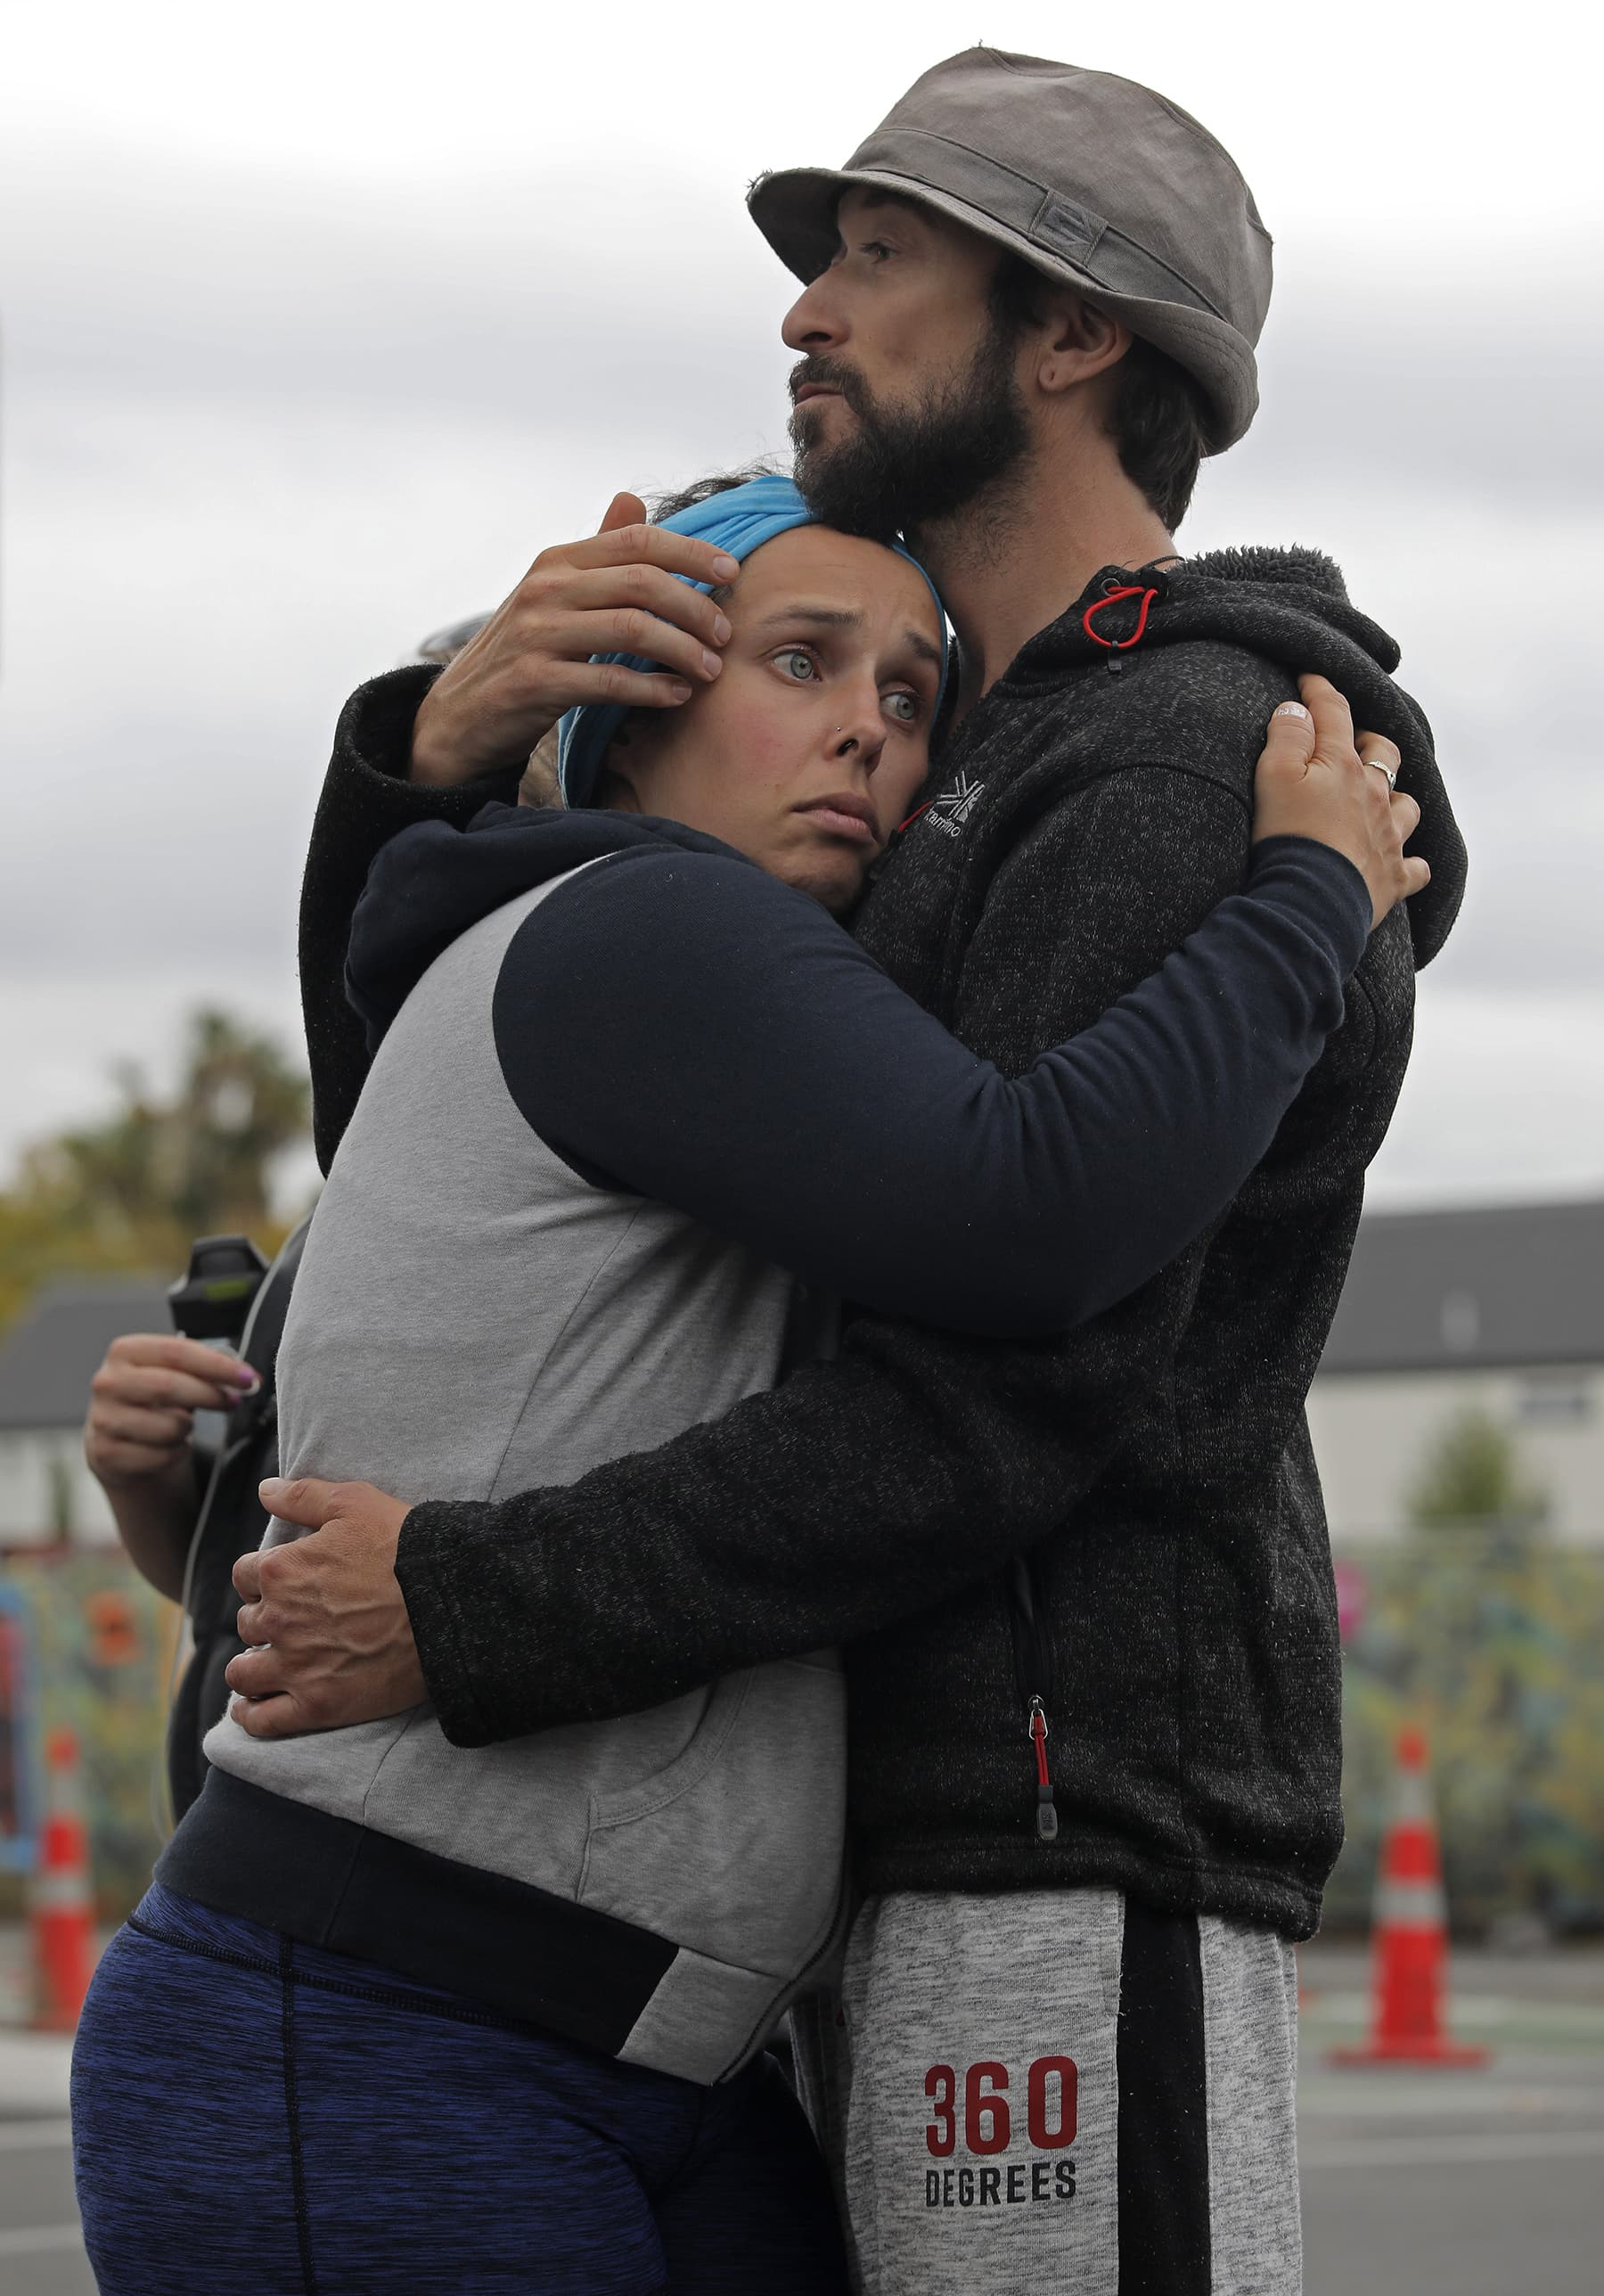 Mourners hug as they pay their respects at a makeshift memorial near the Masjid Al Noor mosque in Christchurch, New Zealand, Saturday, March 16, 2019. —AP